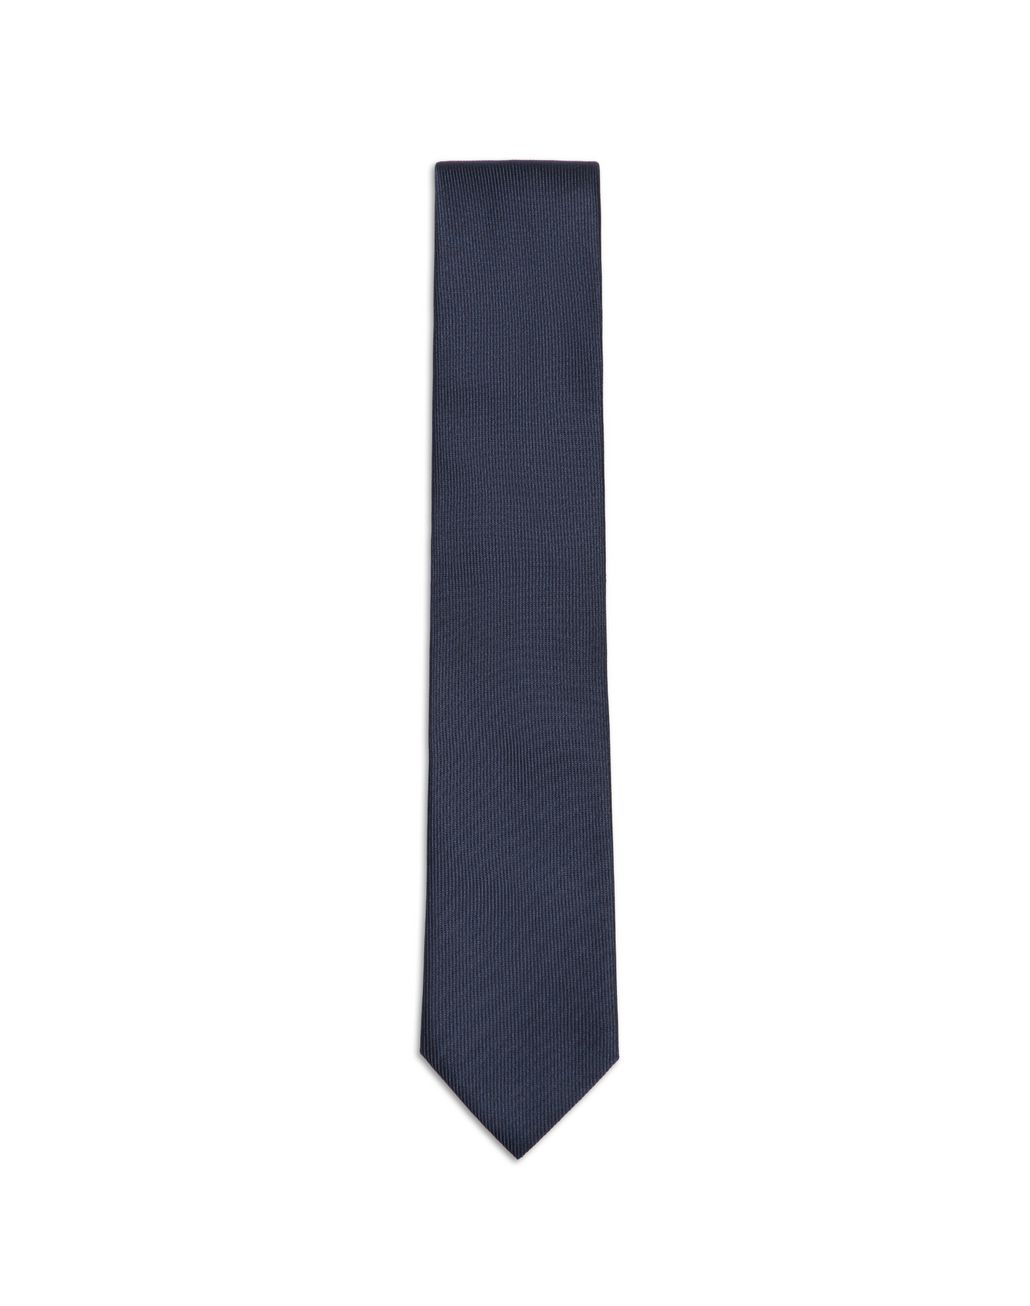 BRIONI Blue Navy Pinstriped Tie Tie & Pocket Square Man f